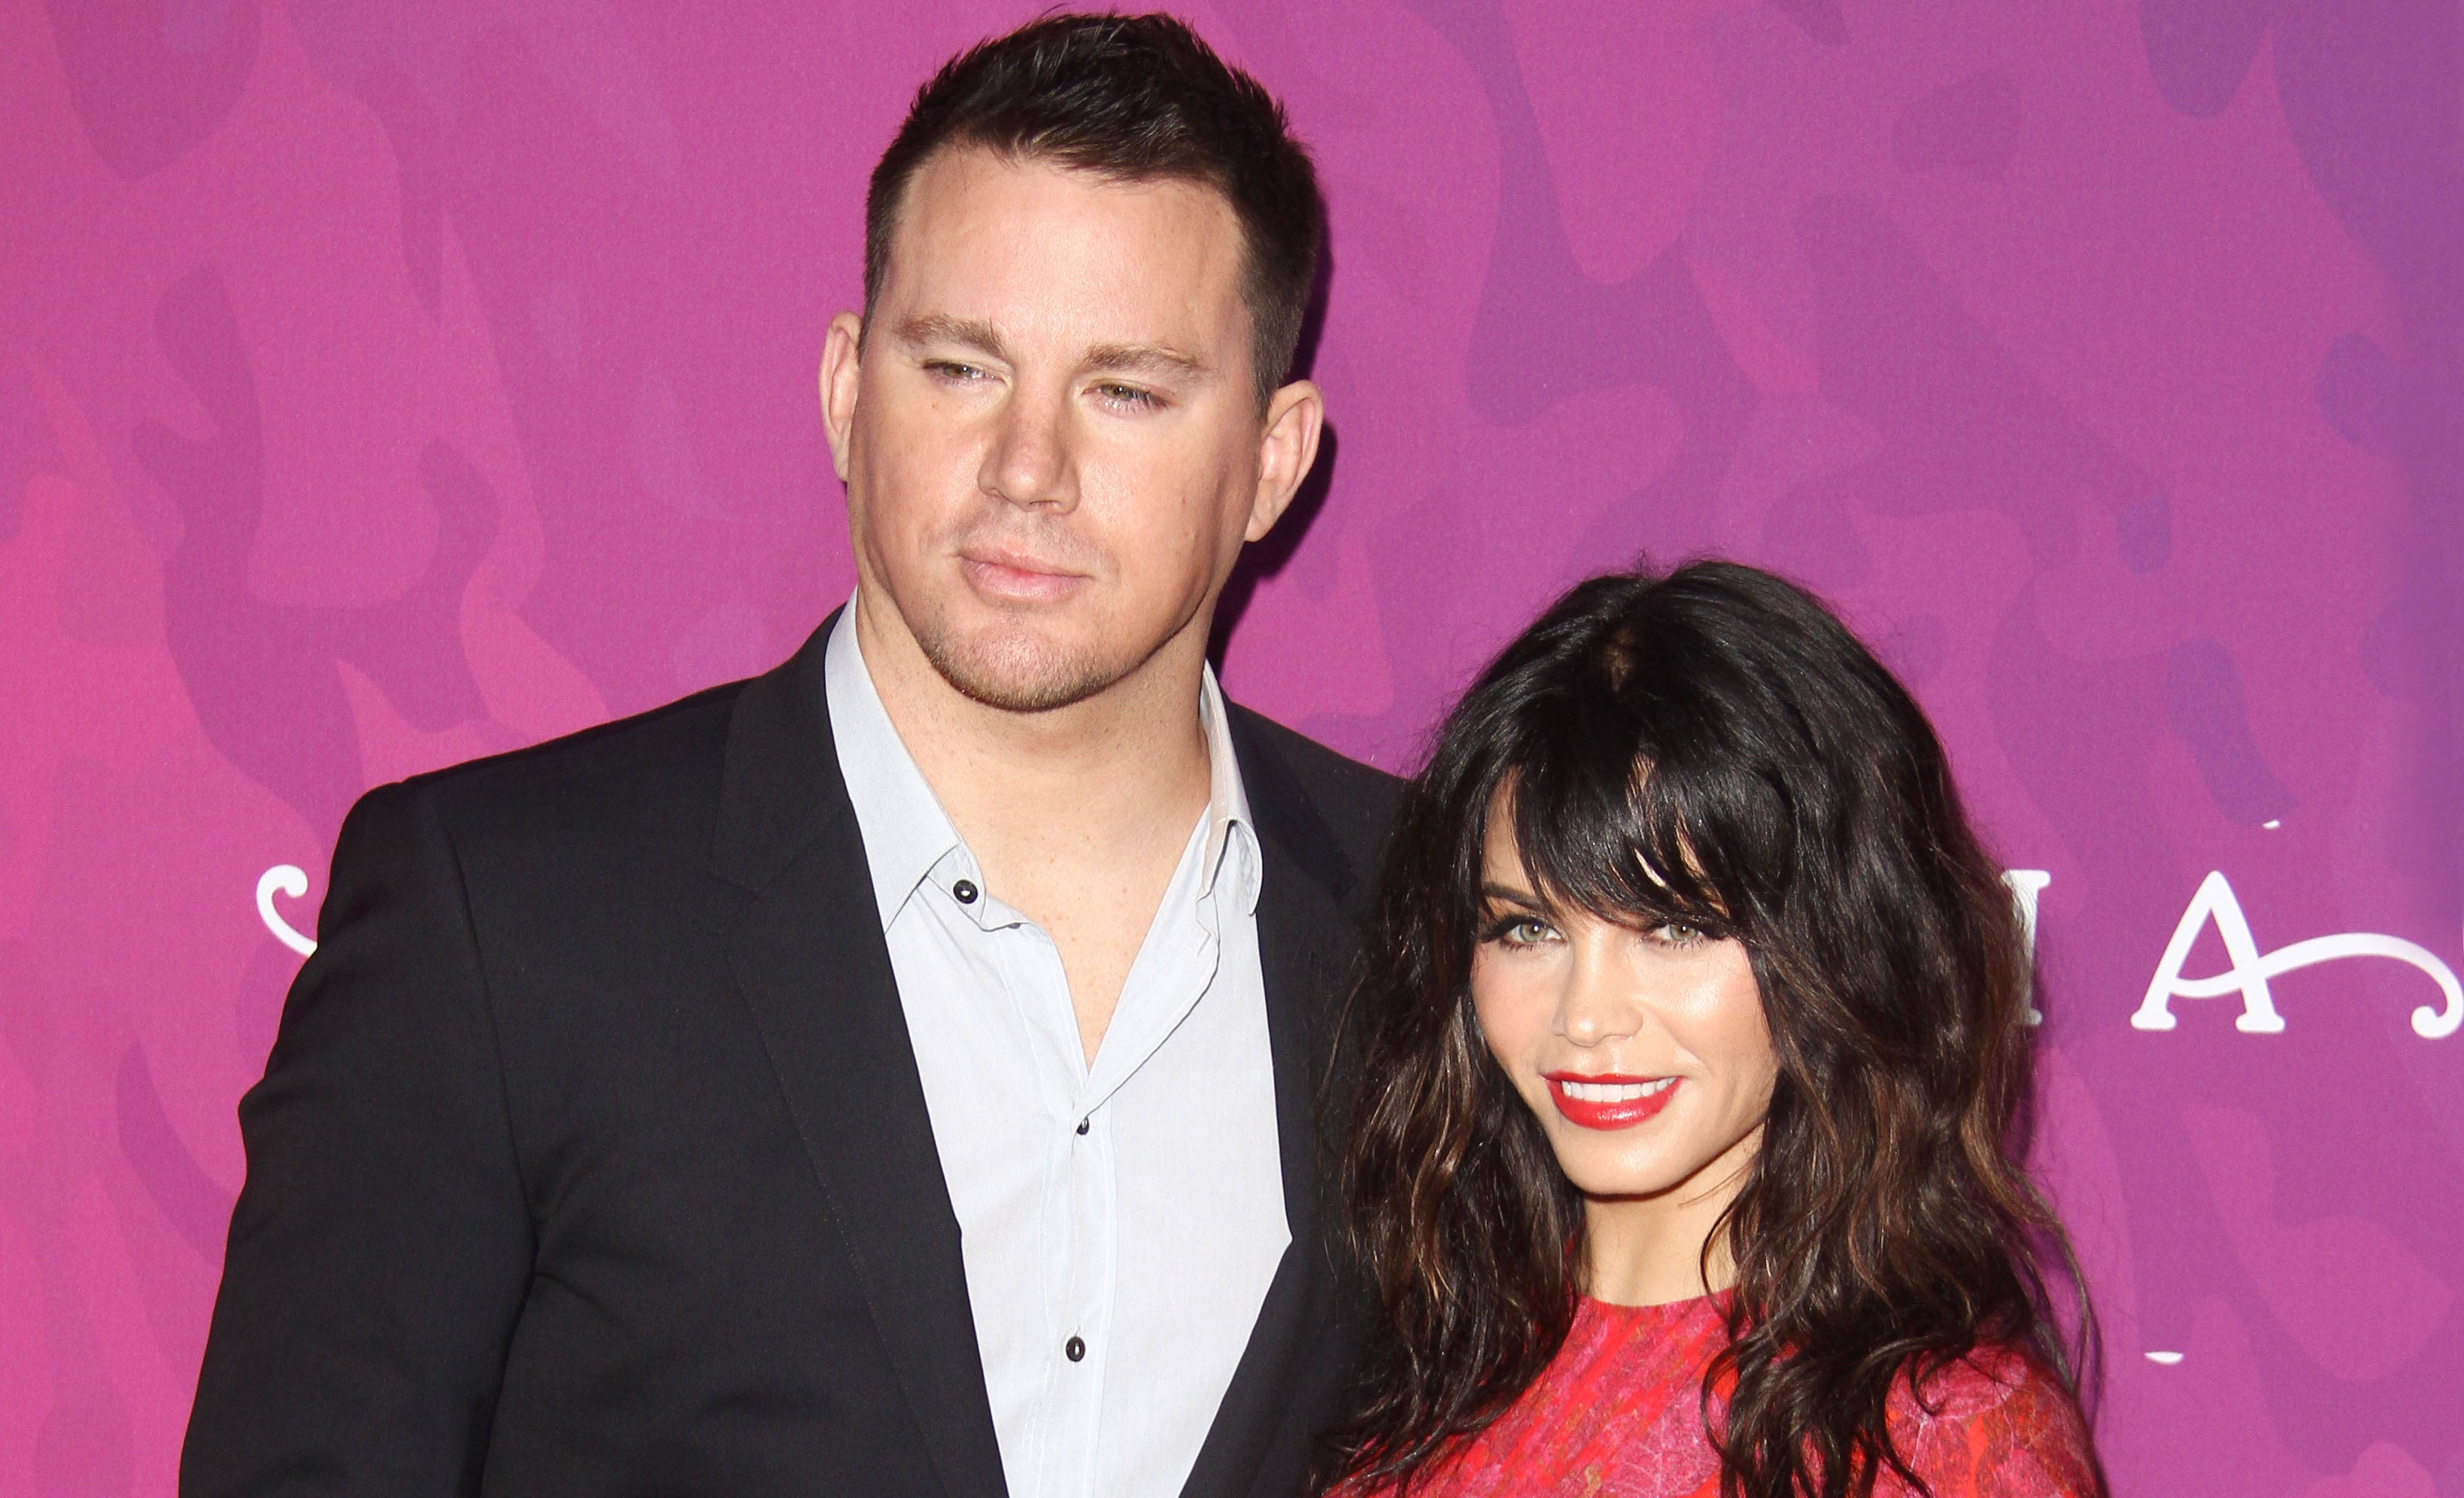 Channing Tatum's 'cruel' proposal prank brought Jenna Dewan Tatum to tears